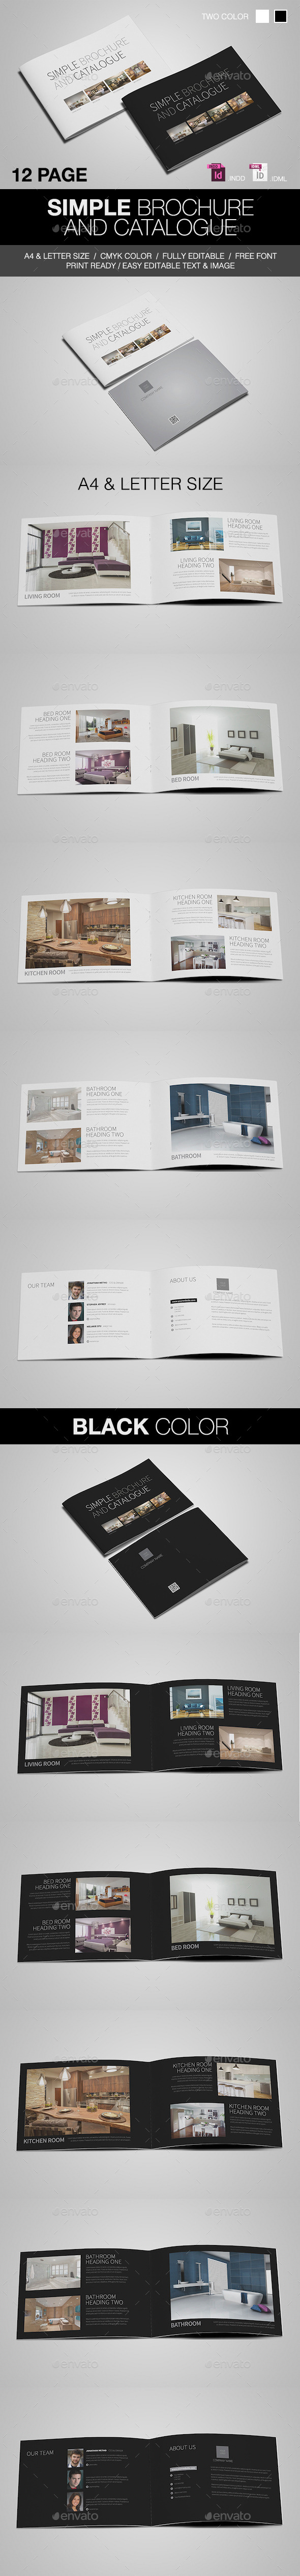 GraphicRiver Simple Catalogue Brochure 8893212